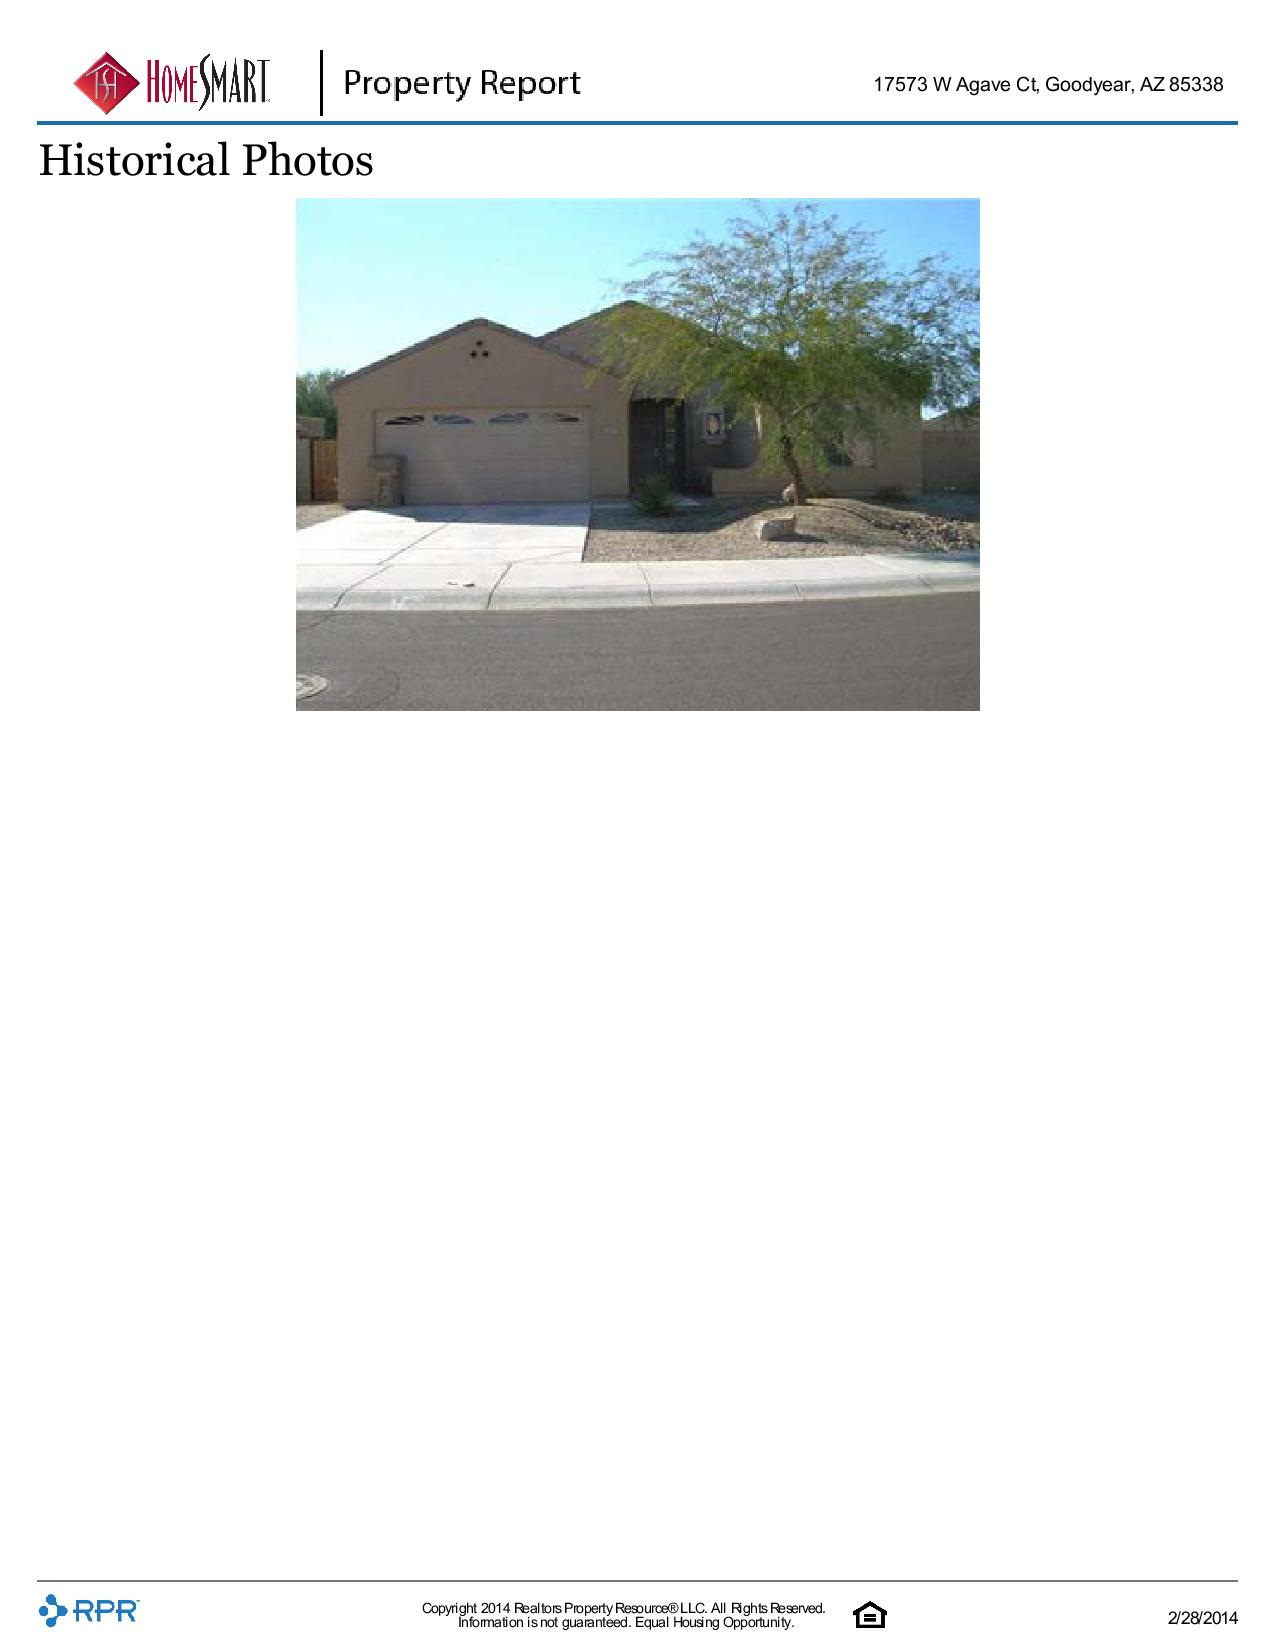 17573-W-Agave-Ct-Goodyear-AZ-85338-page-007